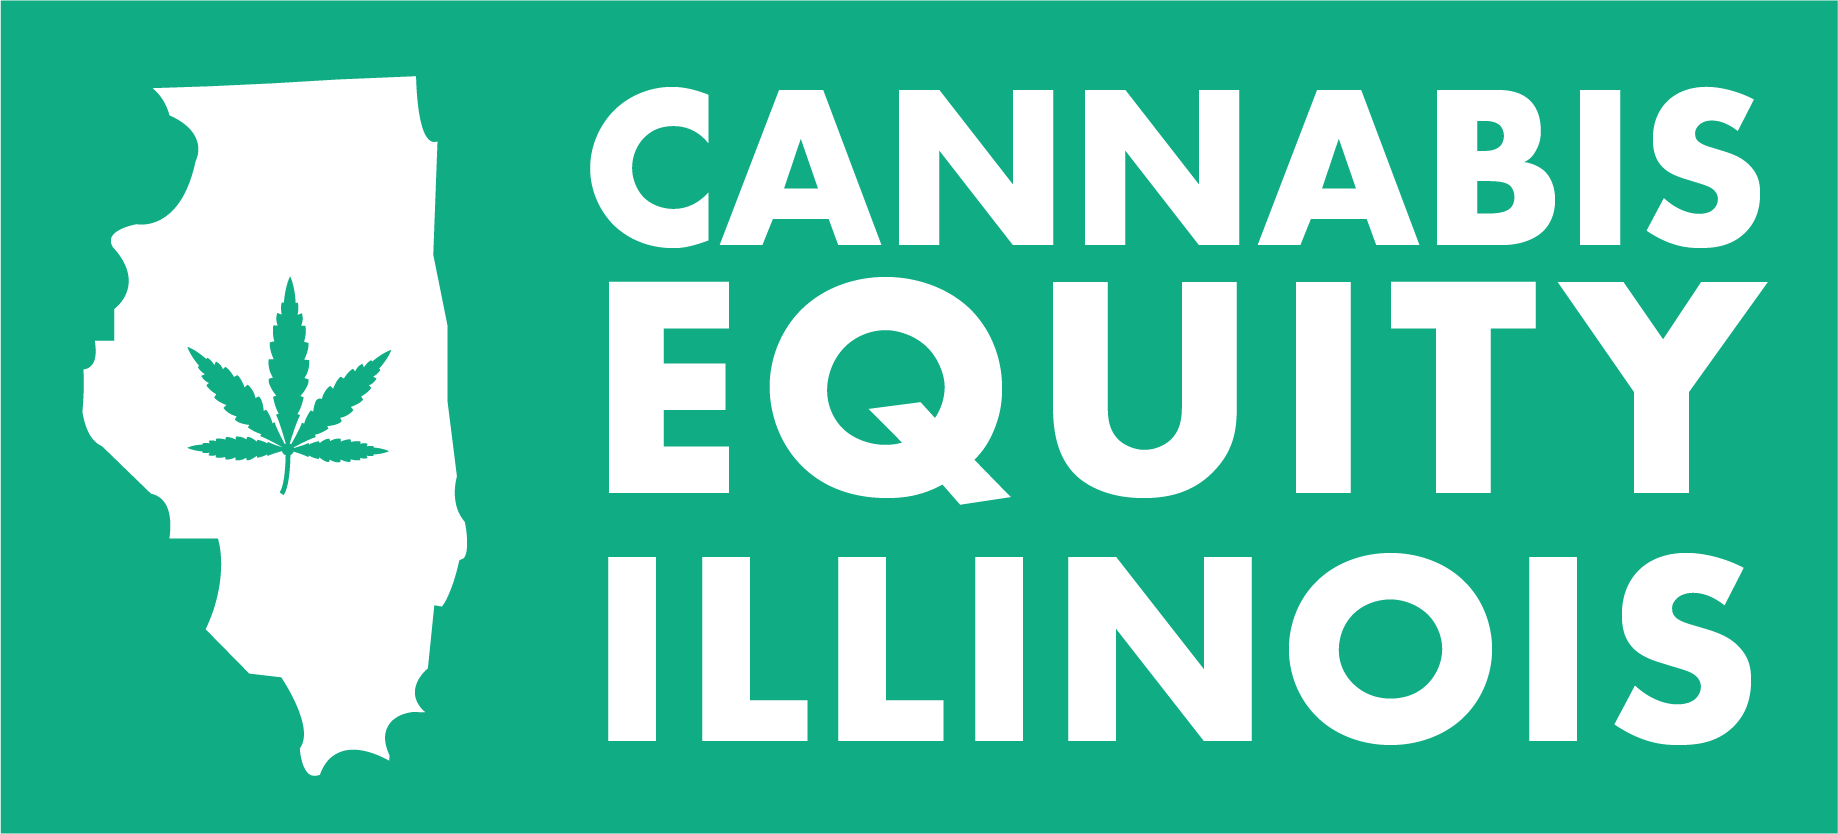 Cannabis Equity Illinois logo